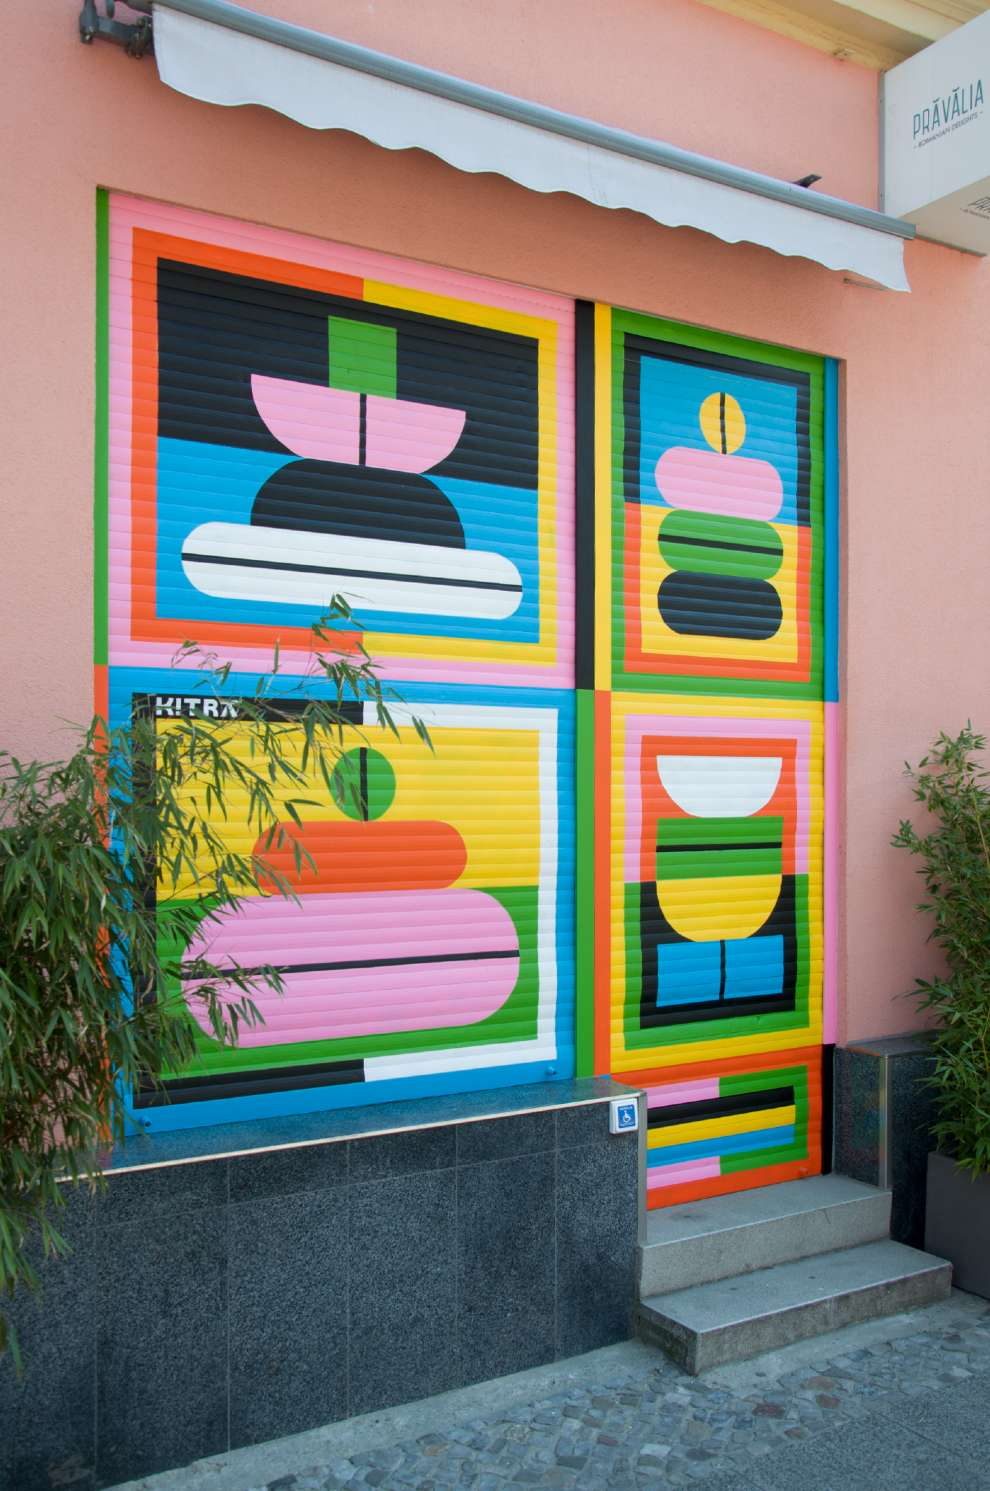 Kitra, Bold and colourful geometric shapes design hand painted on a store